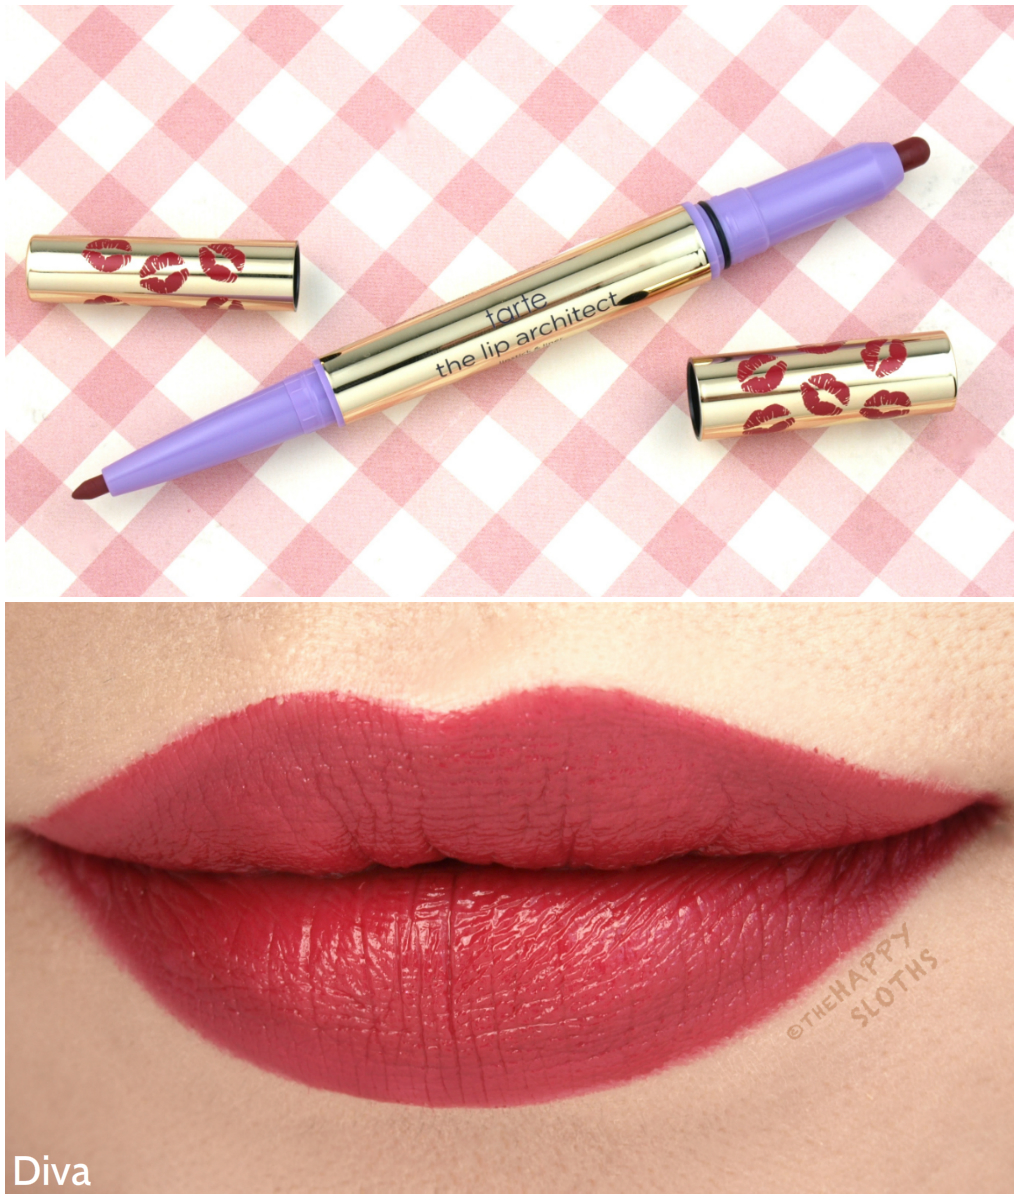 "Tarte The Lip Architect Lipstick & Liner in ""Diva"": Review and Swatches"